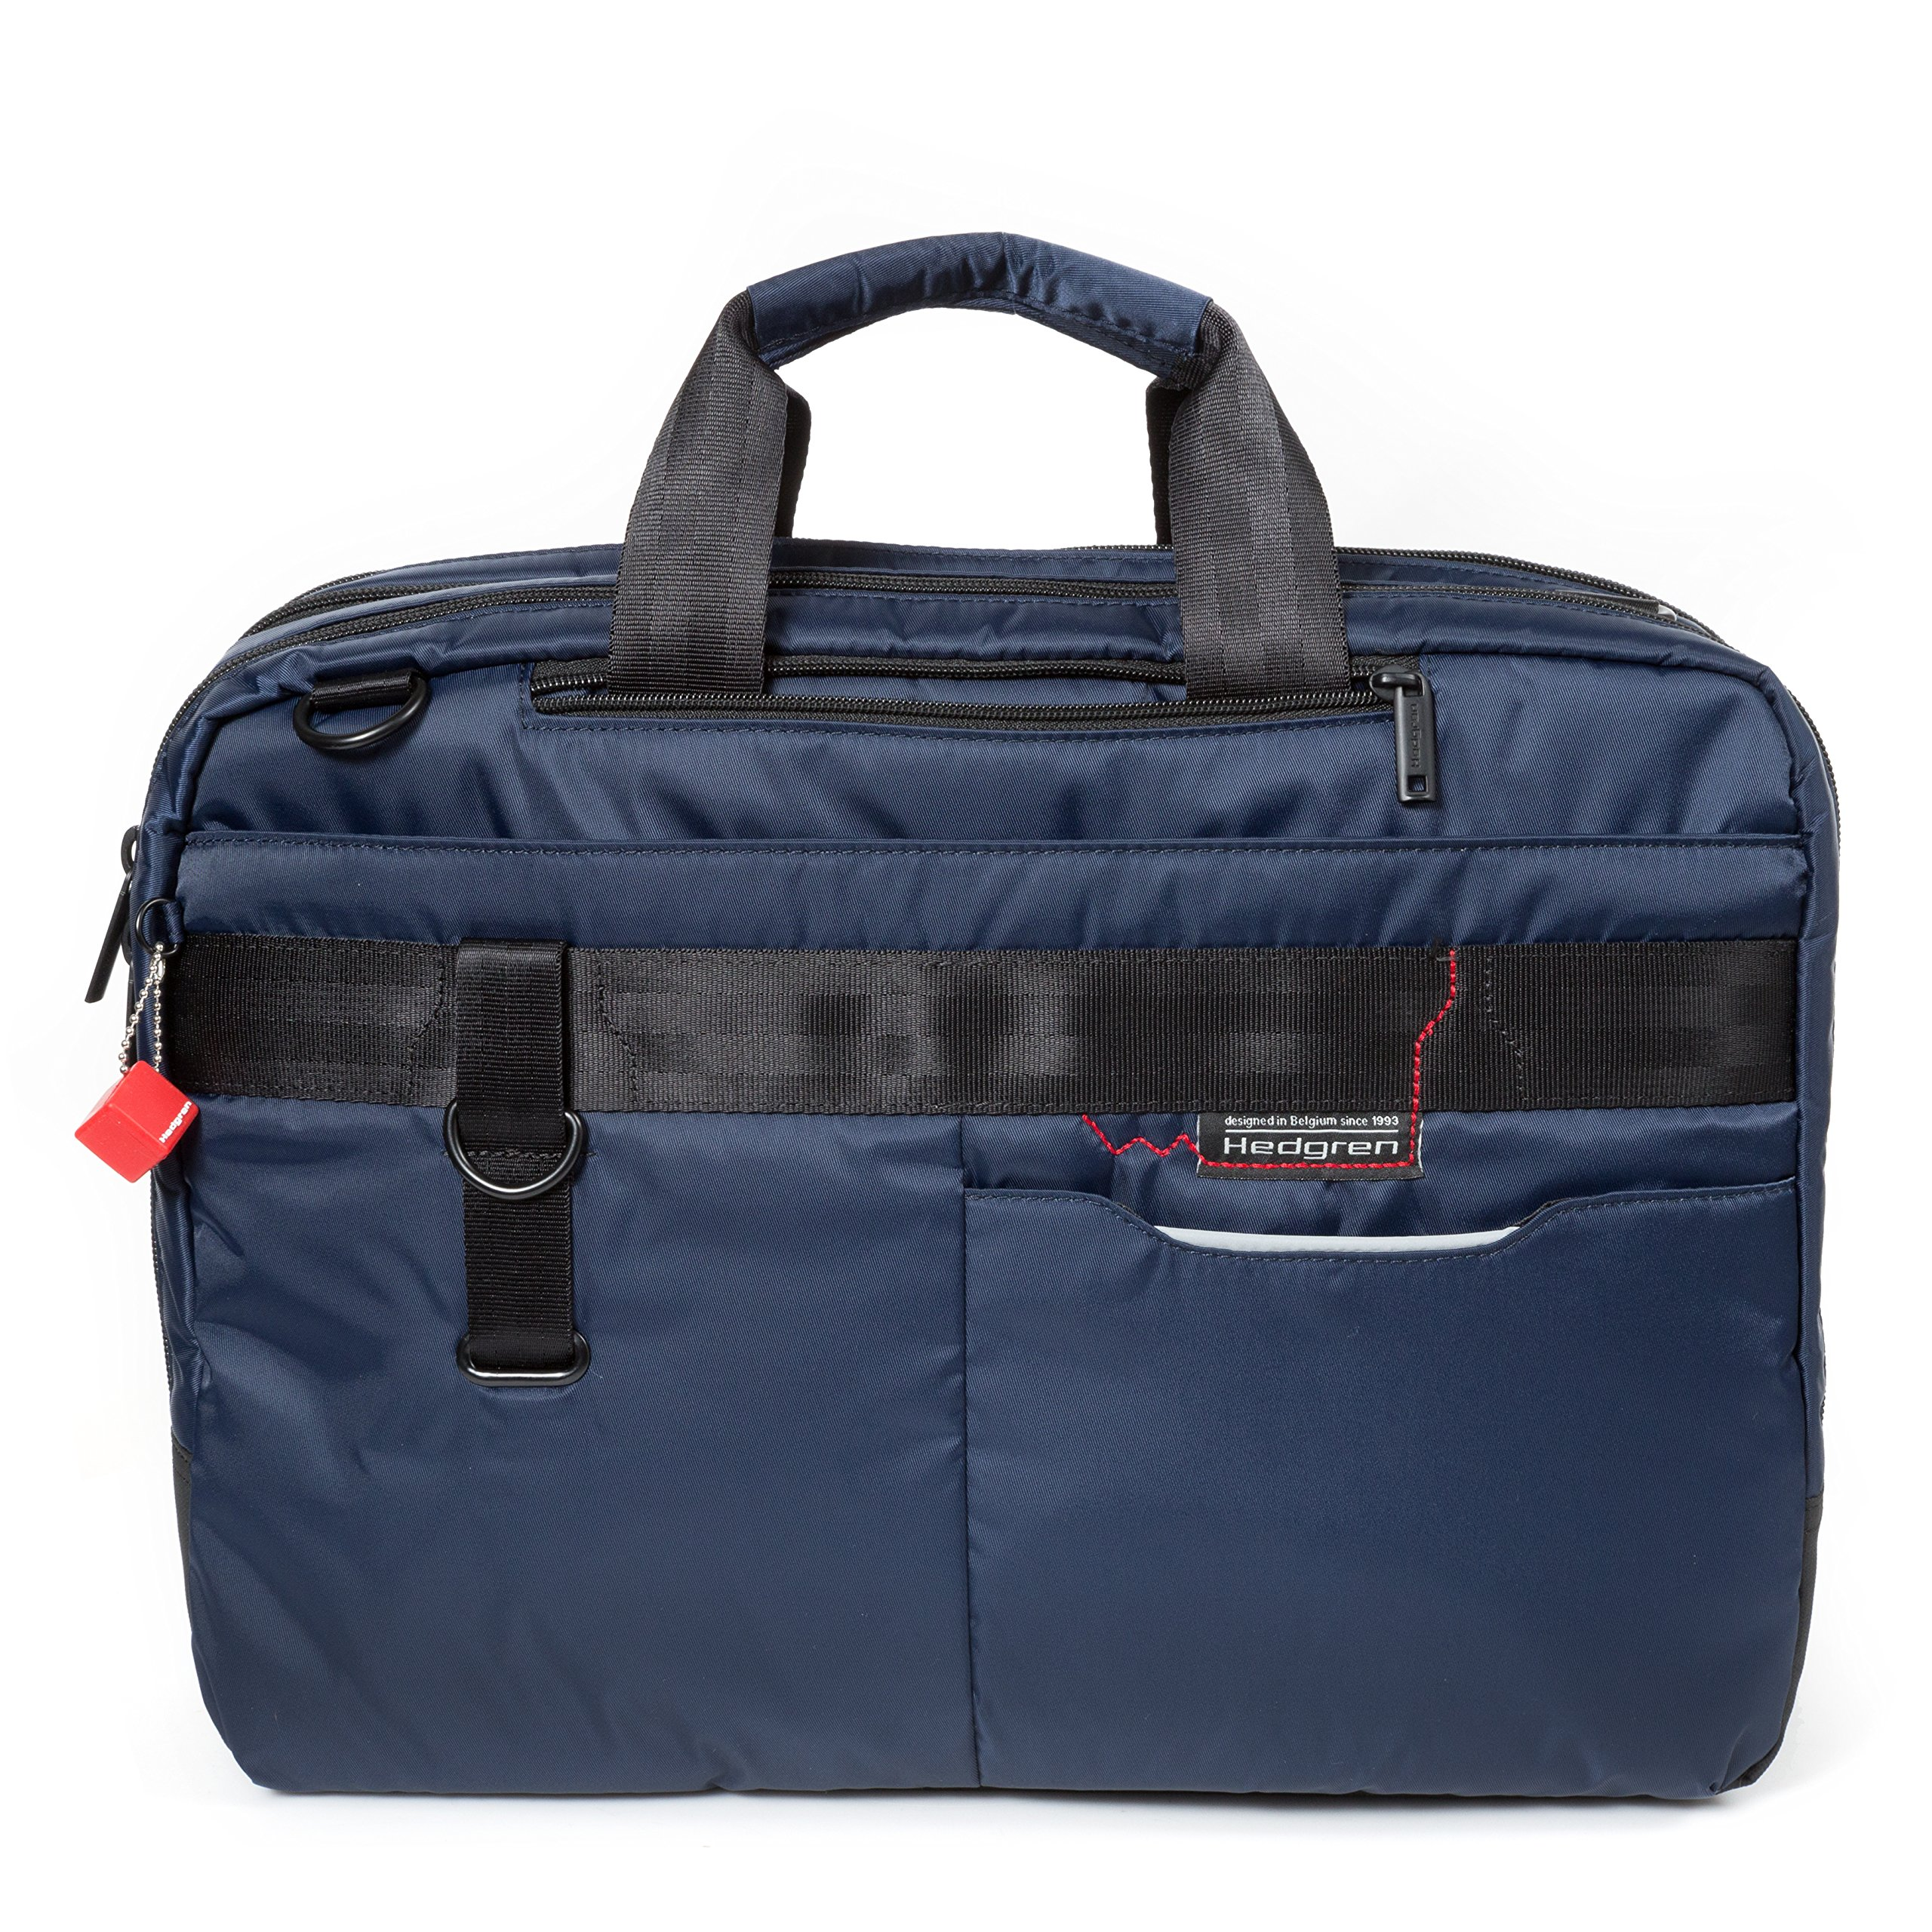 Hedgren Brook-E Business Bag, Men's, One Size (Peacoat) by Hedgren (Image #1)